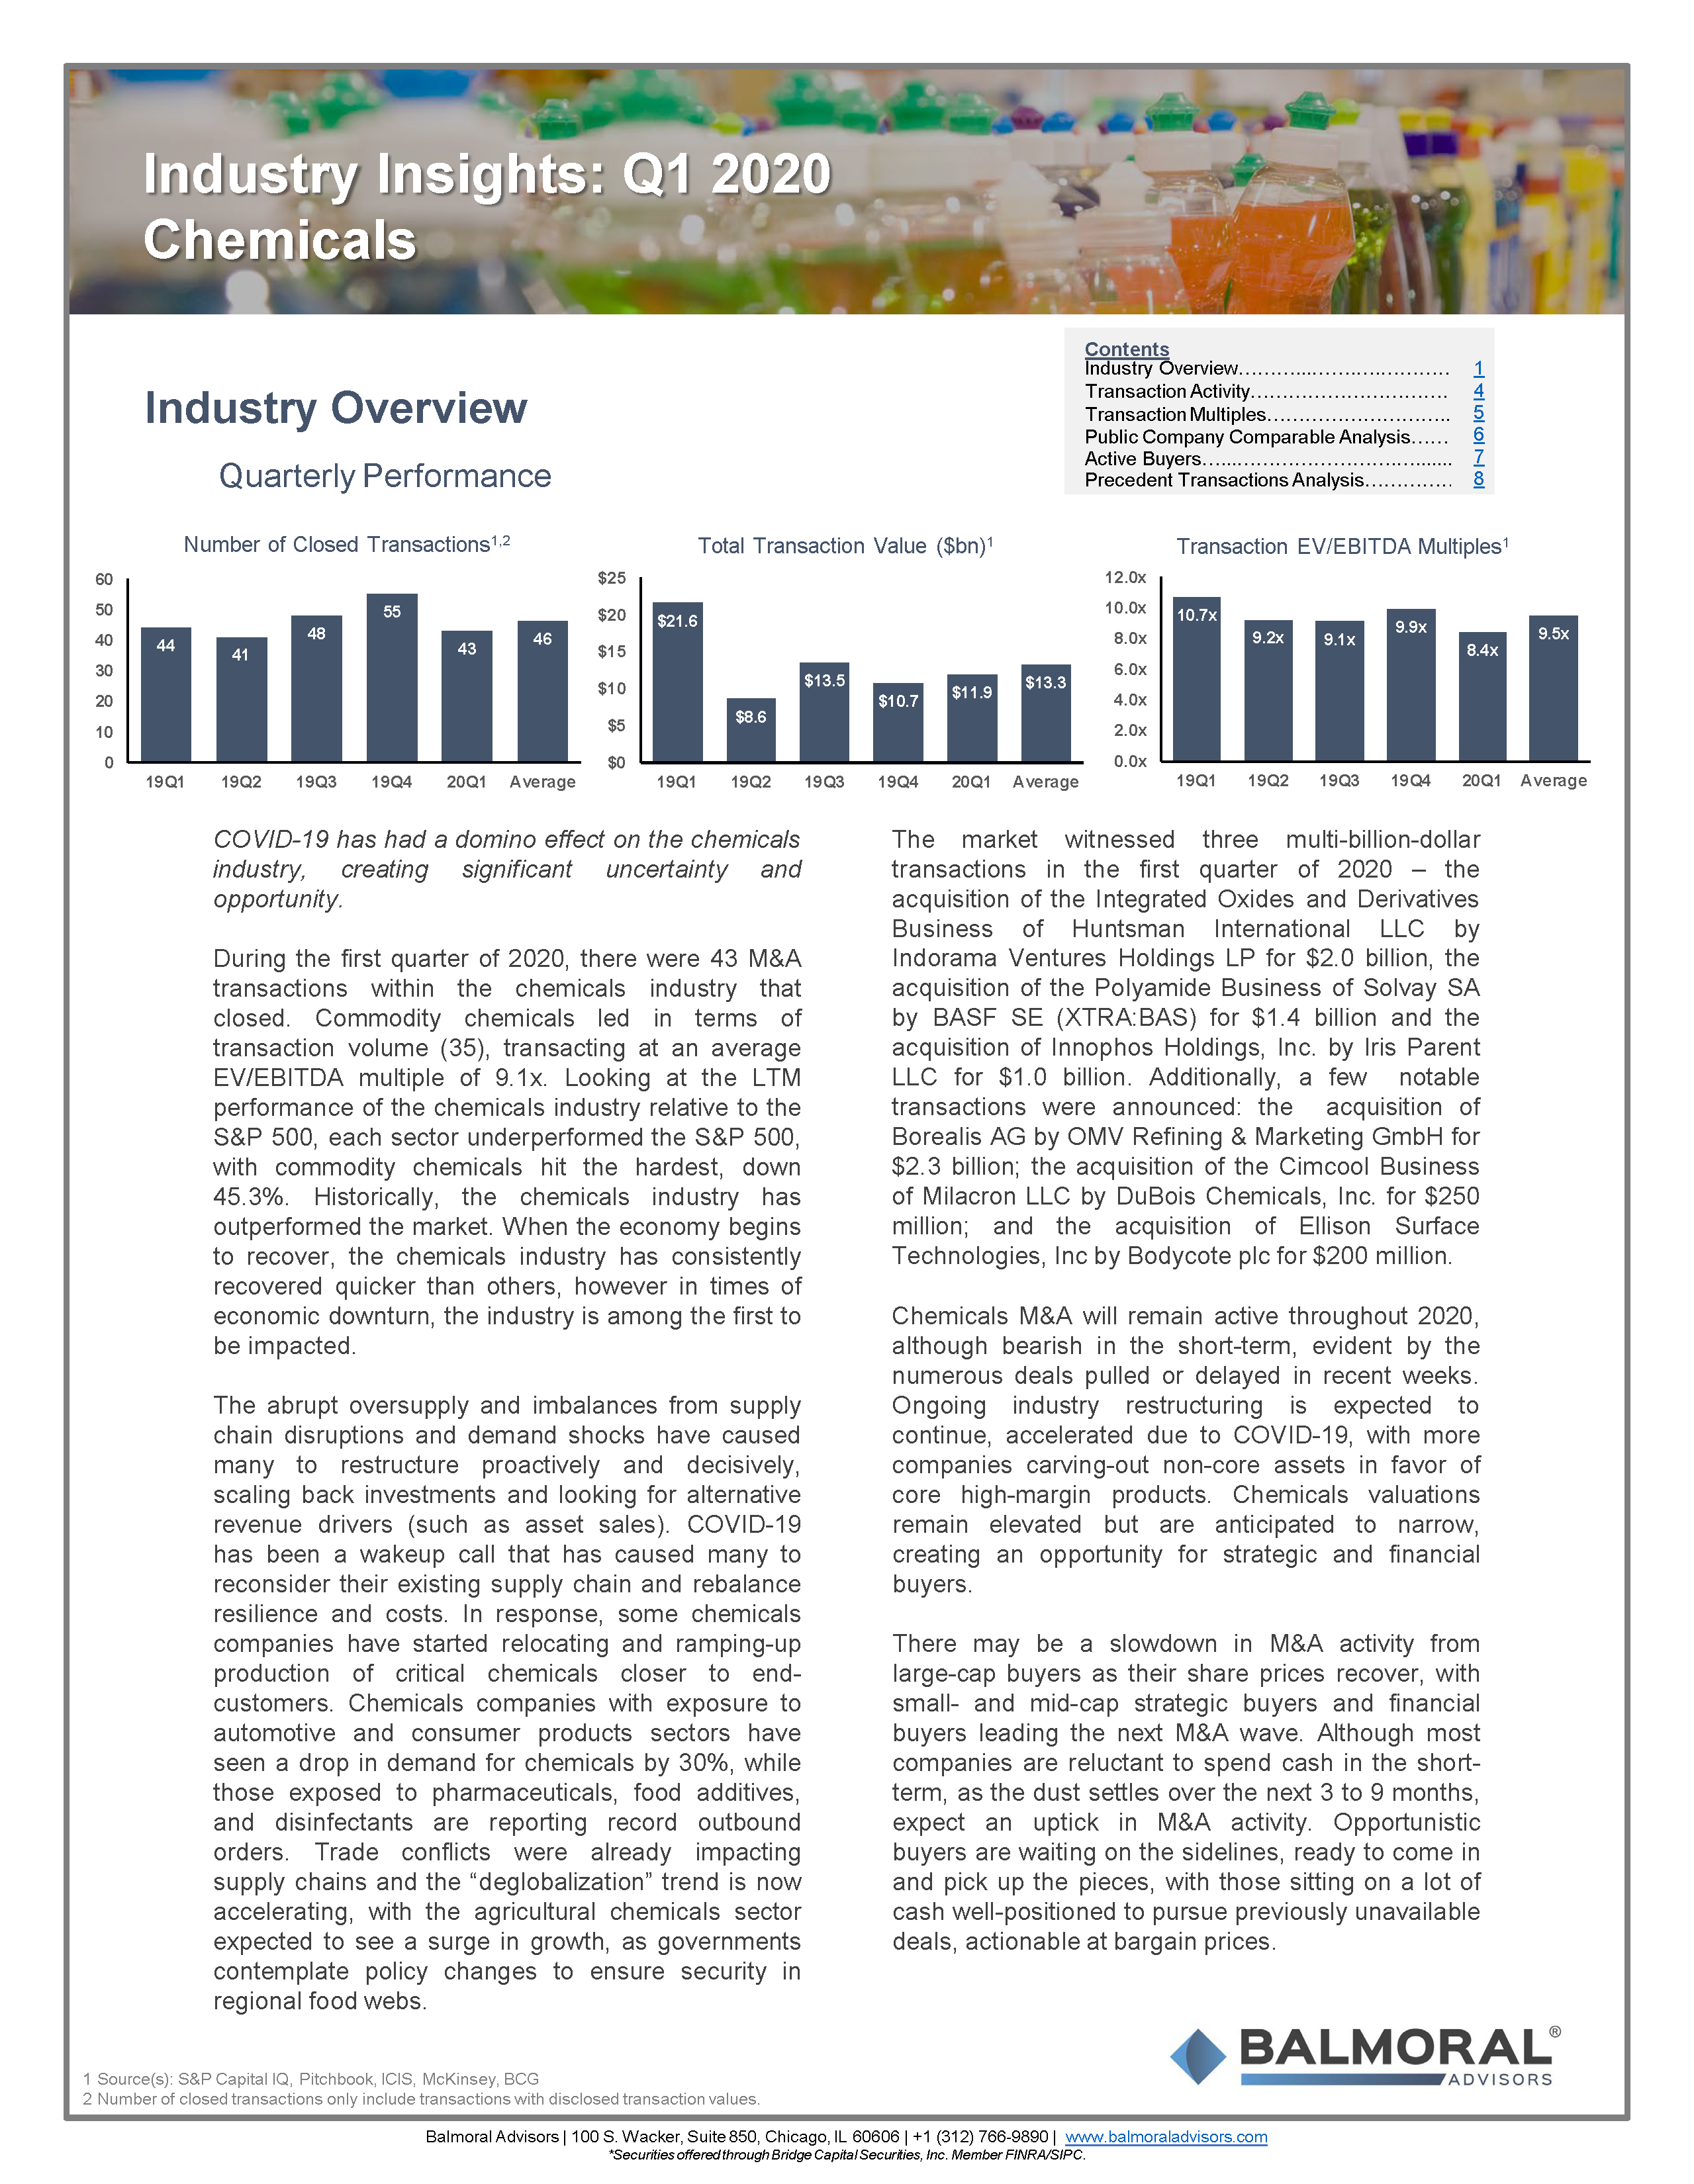 industry-insights-chemicals-20q1-v3_page_01